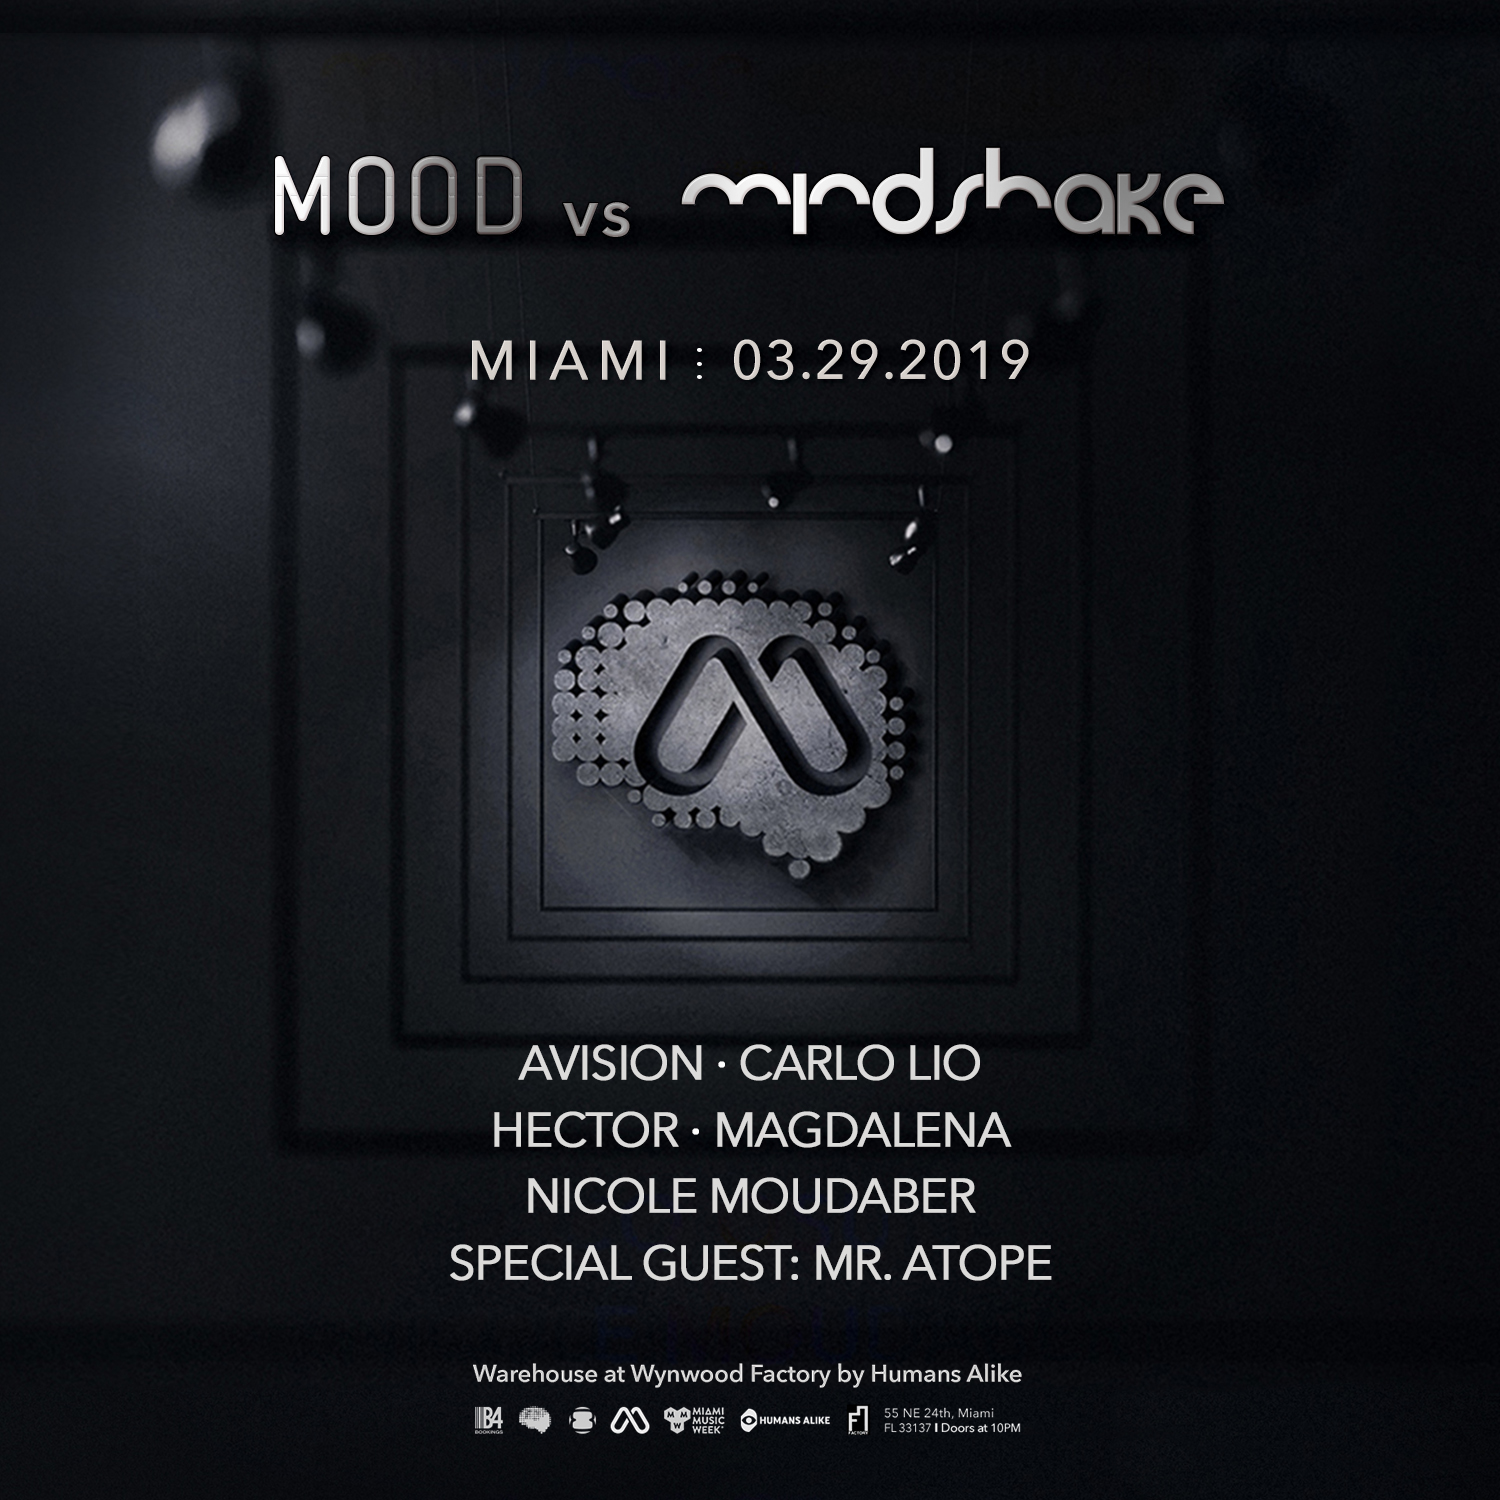 Mood vs Mindshake Miami Image